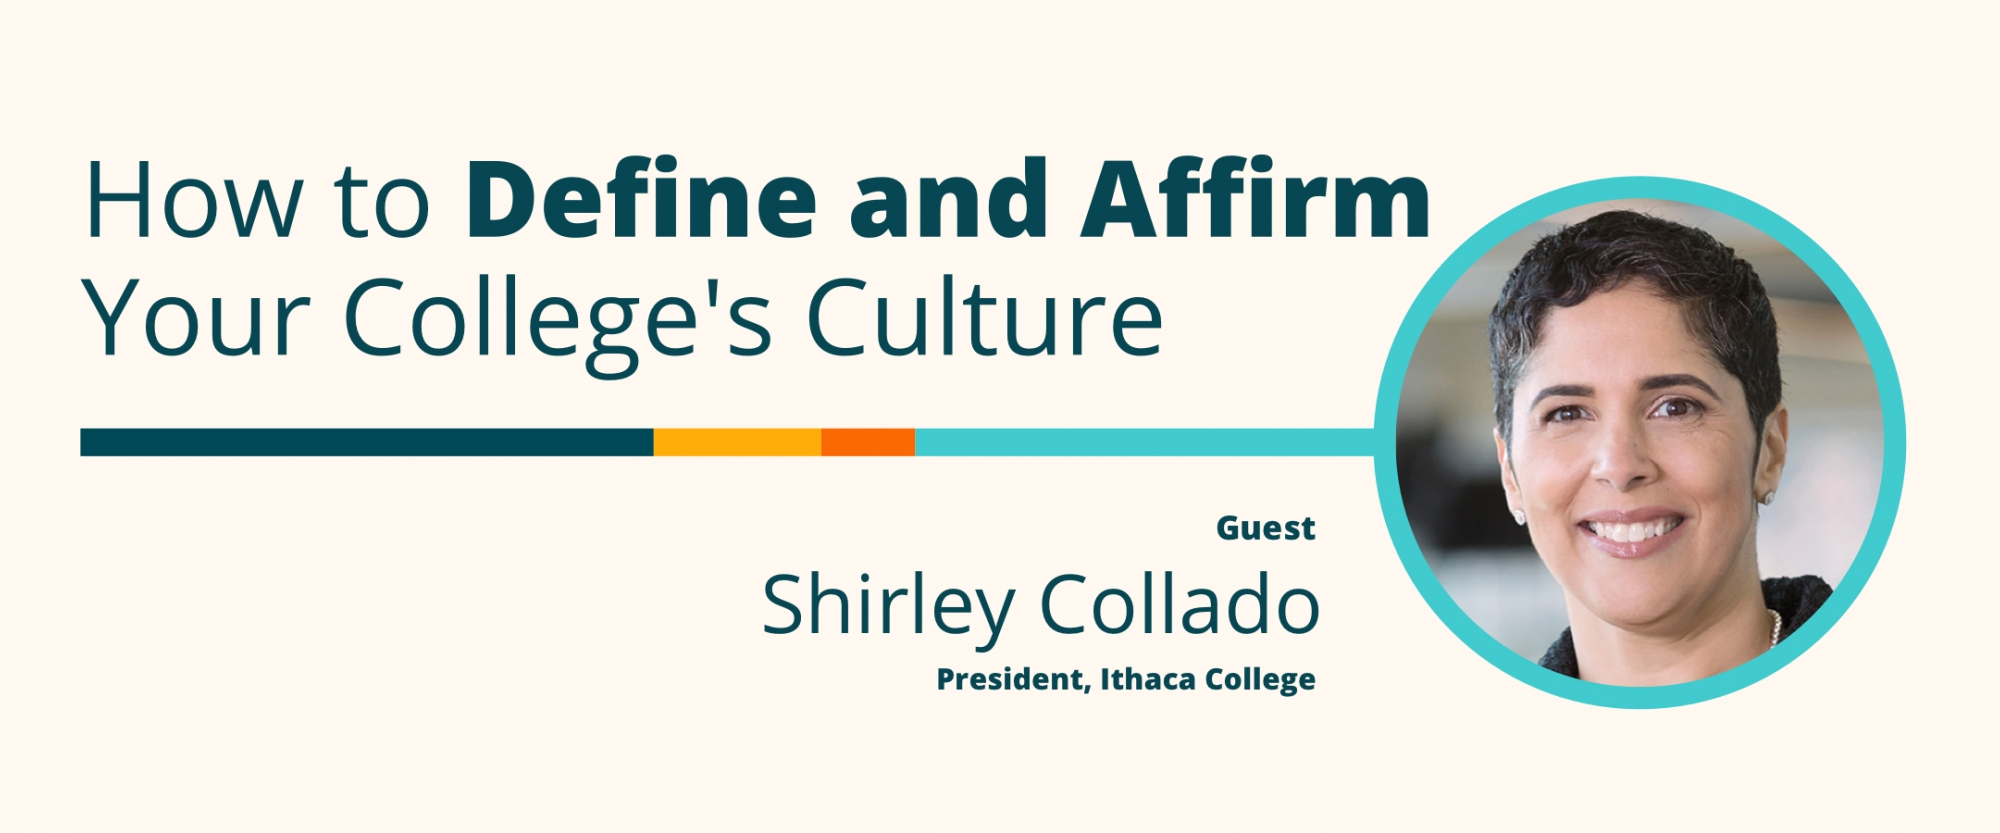 How to Define and Affirm Your College's Culture